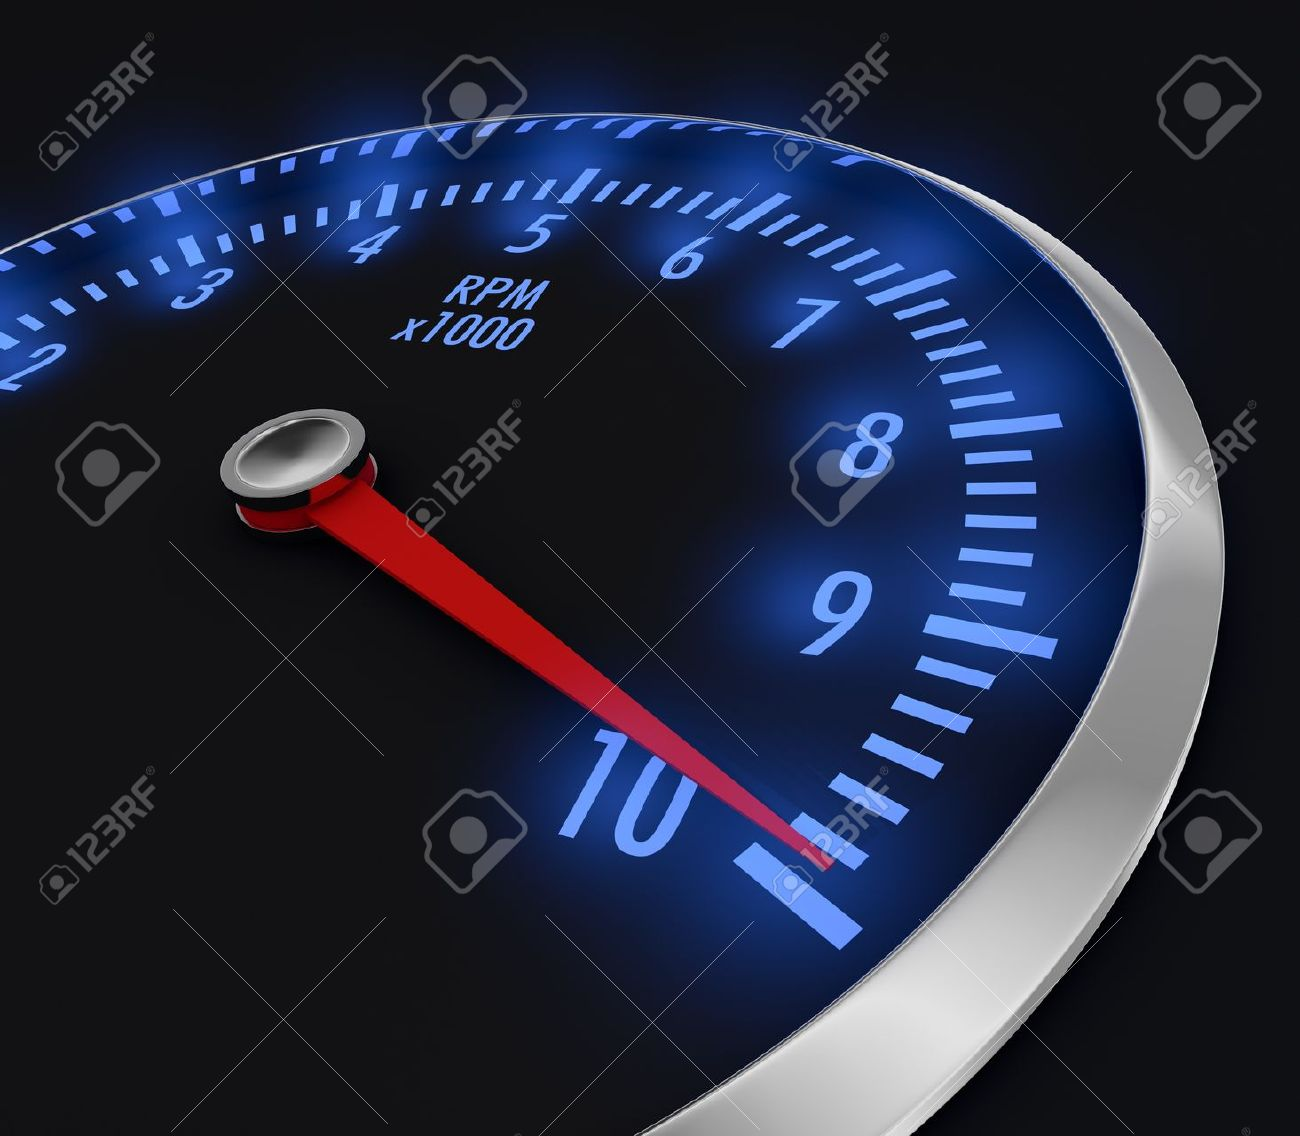 17235265-speedometer-with-rpm-with-needle-near-the-max-3d